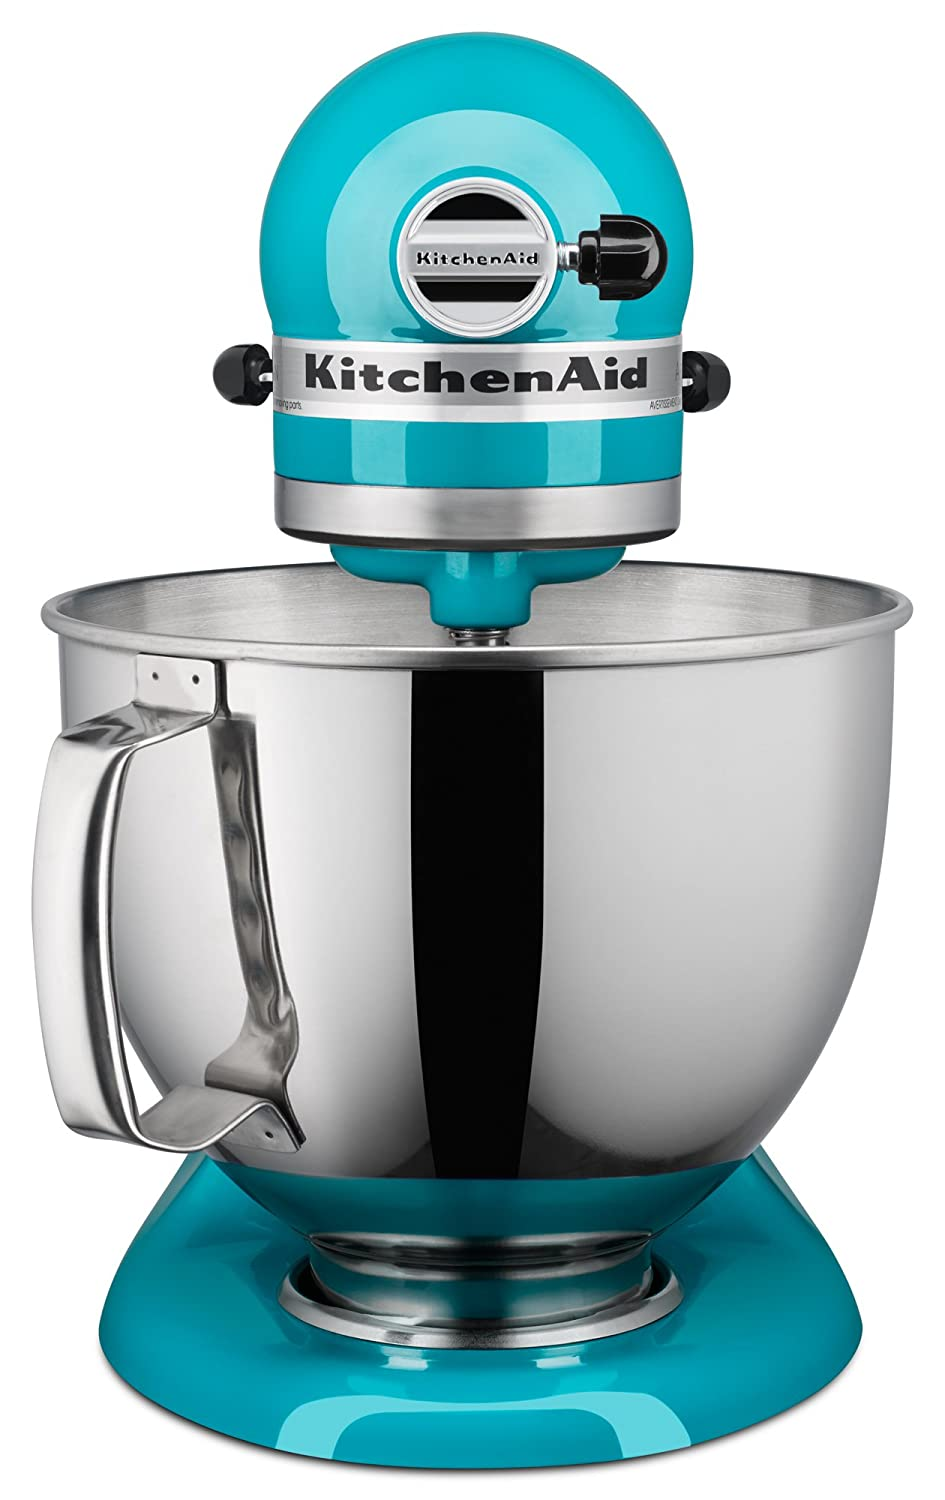 Amazon.com: KitchenAid KSM150PSON KSM150PSON Stand Mixer, 5 quart ...